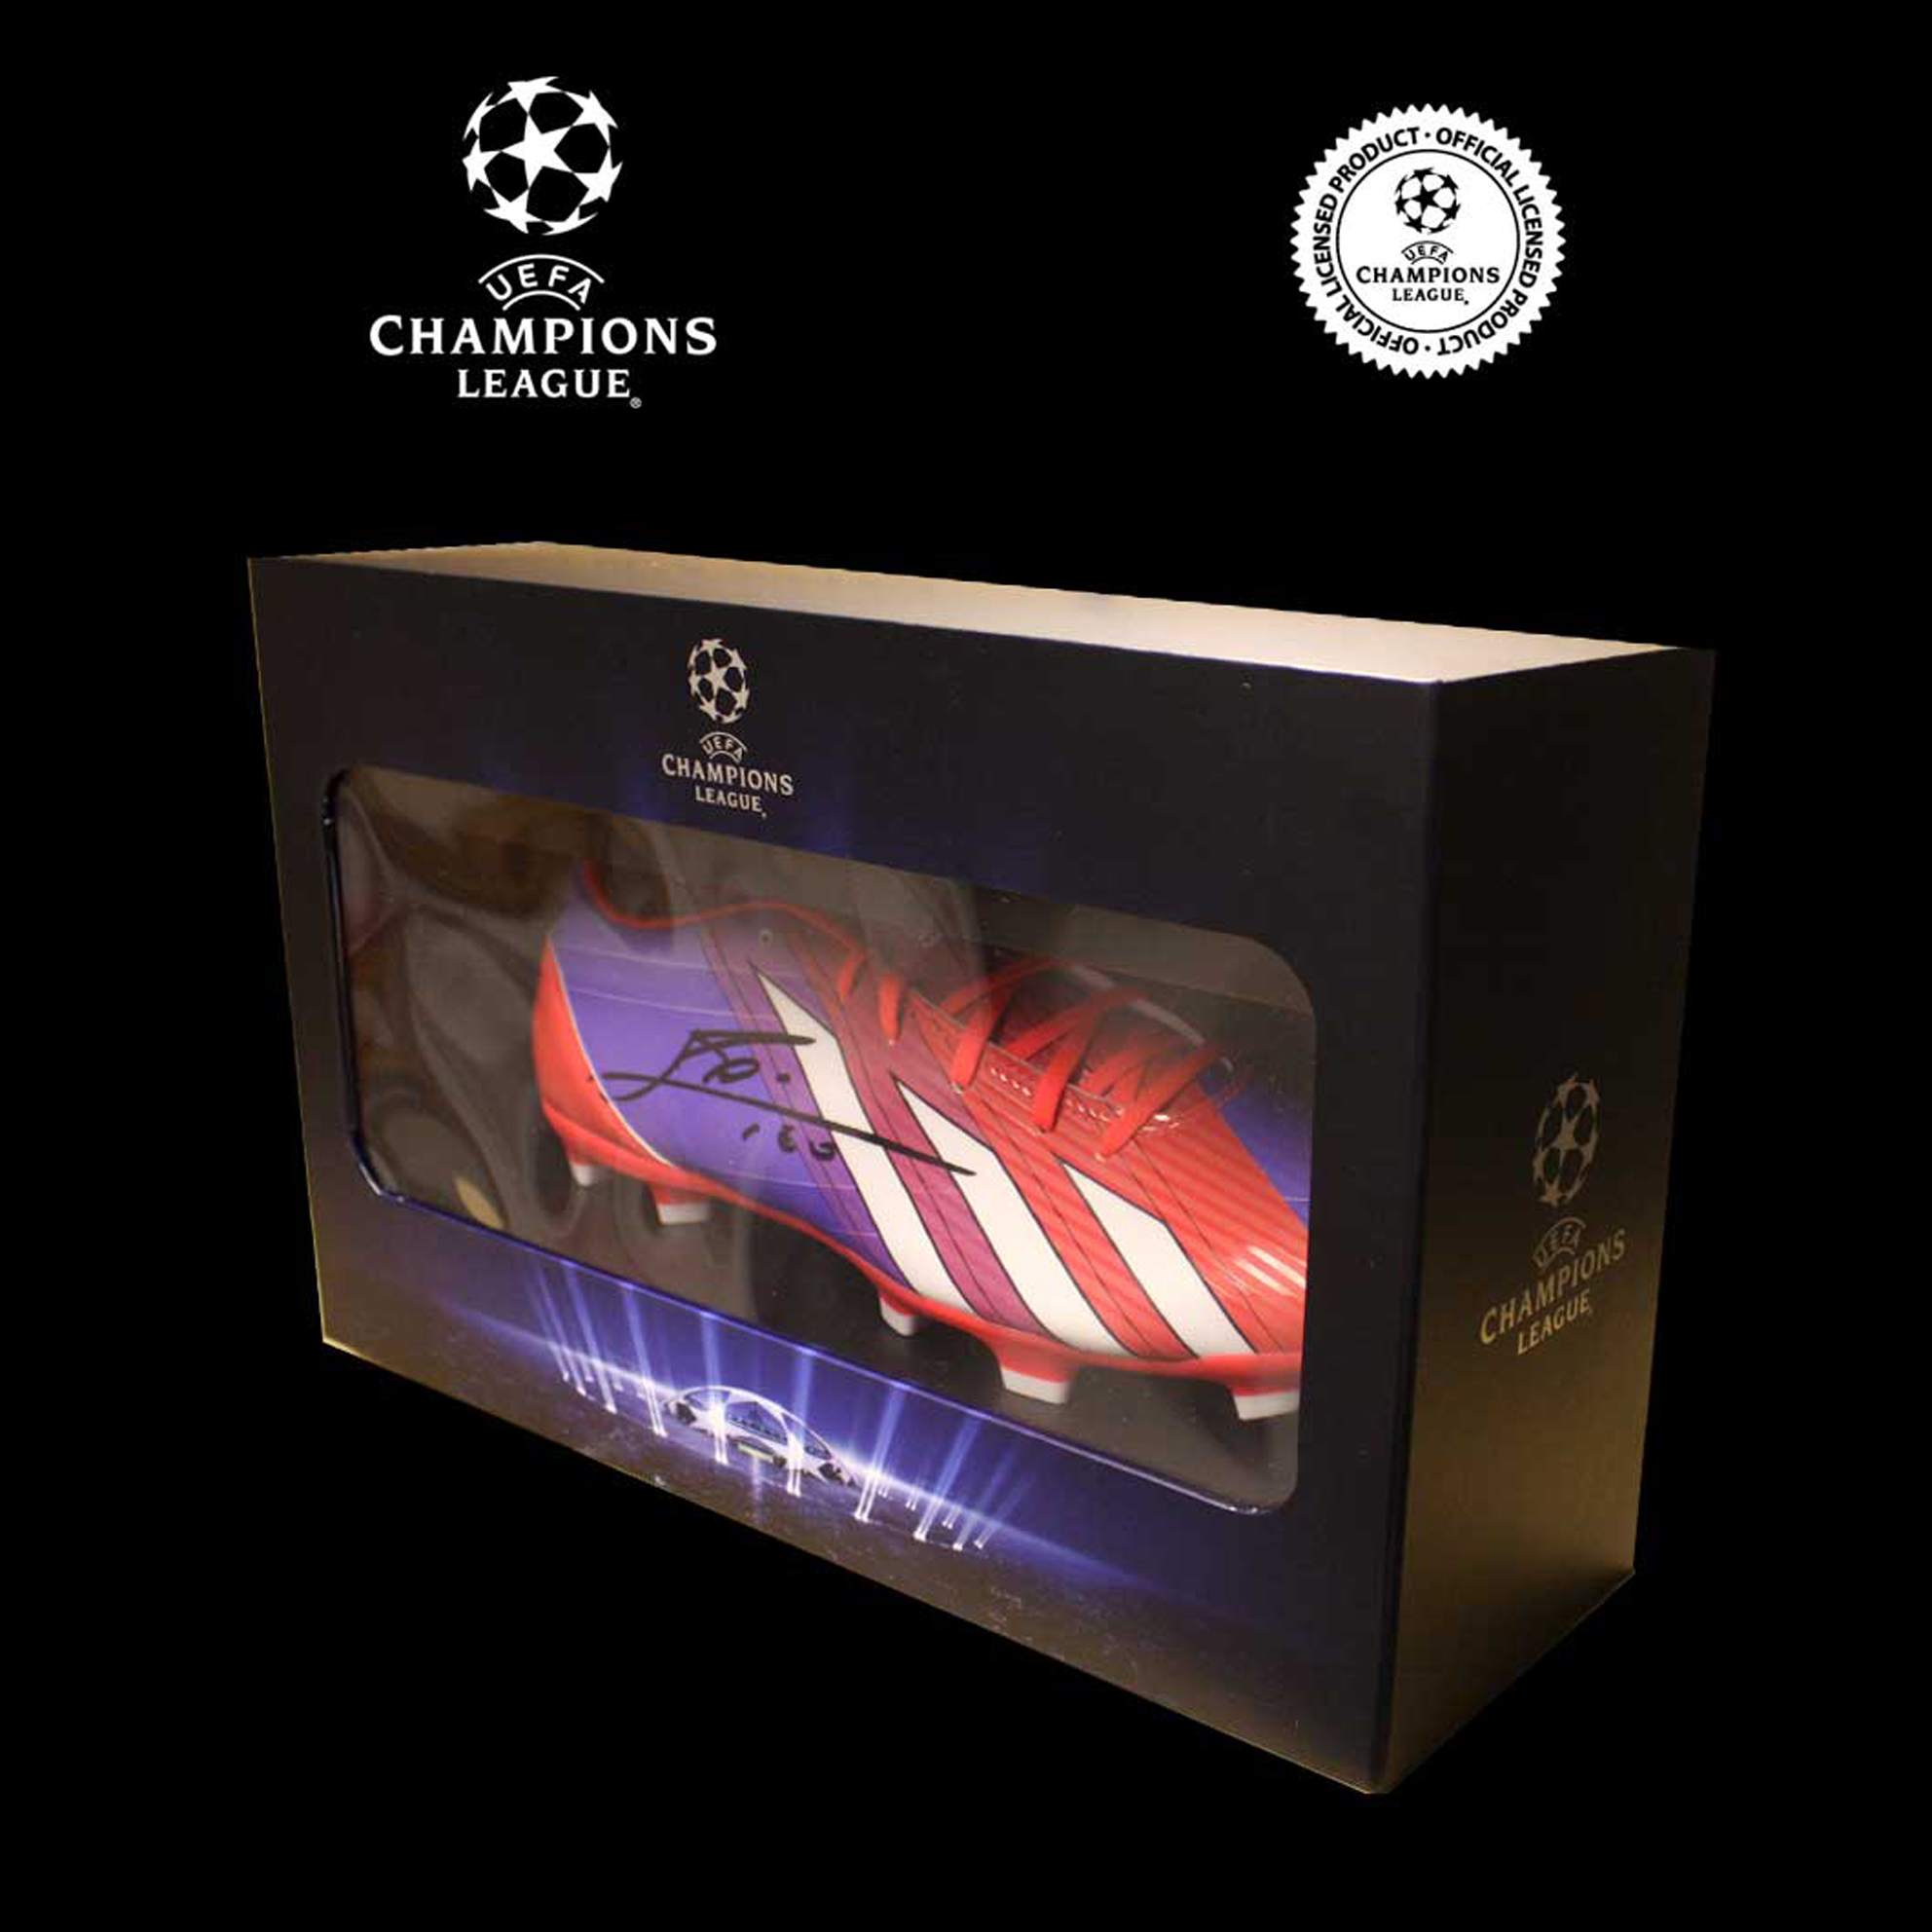 UEFA Champions League Leo Messi Signed AdiZero III Adidas Boot In Deluxe Packaging